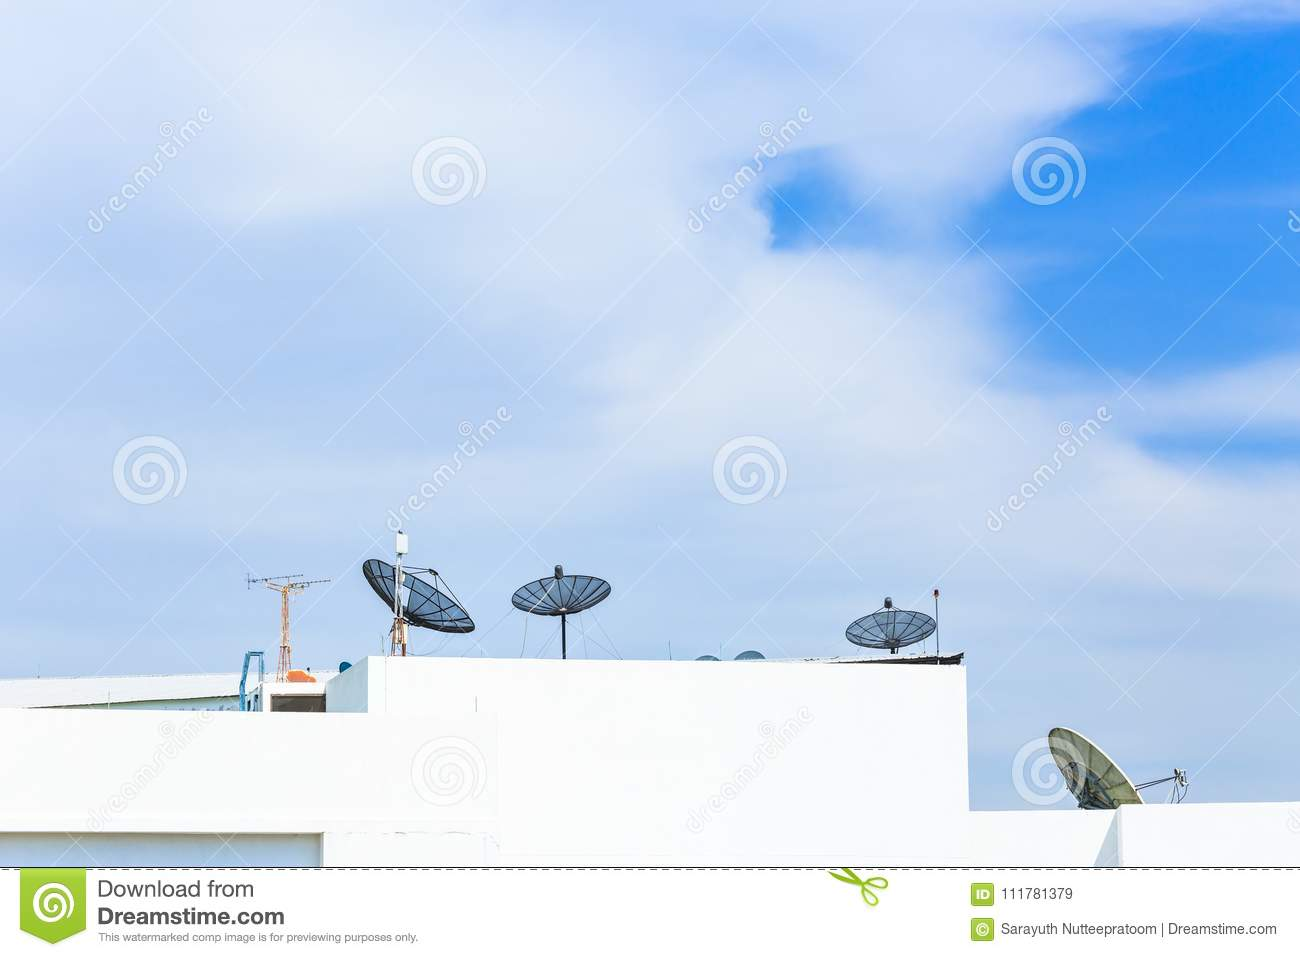 Satellite dish antenna on top of the building in urban area at n